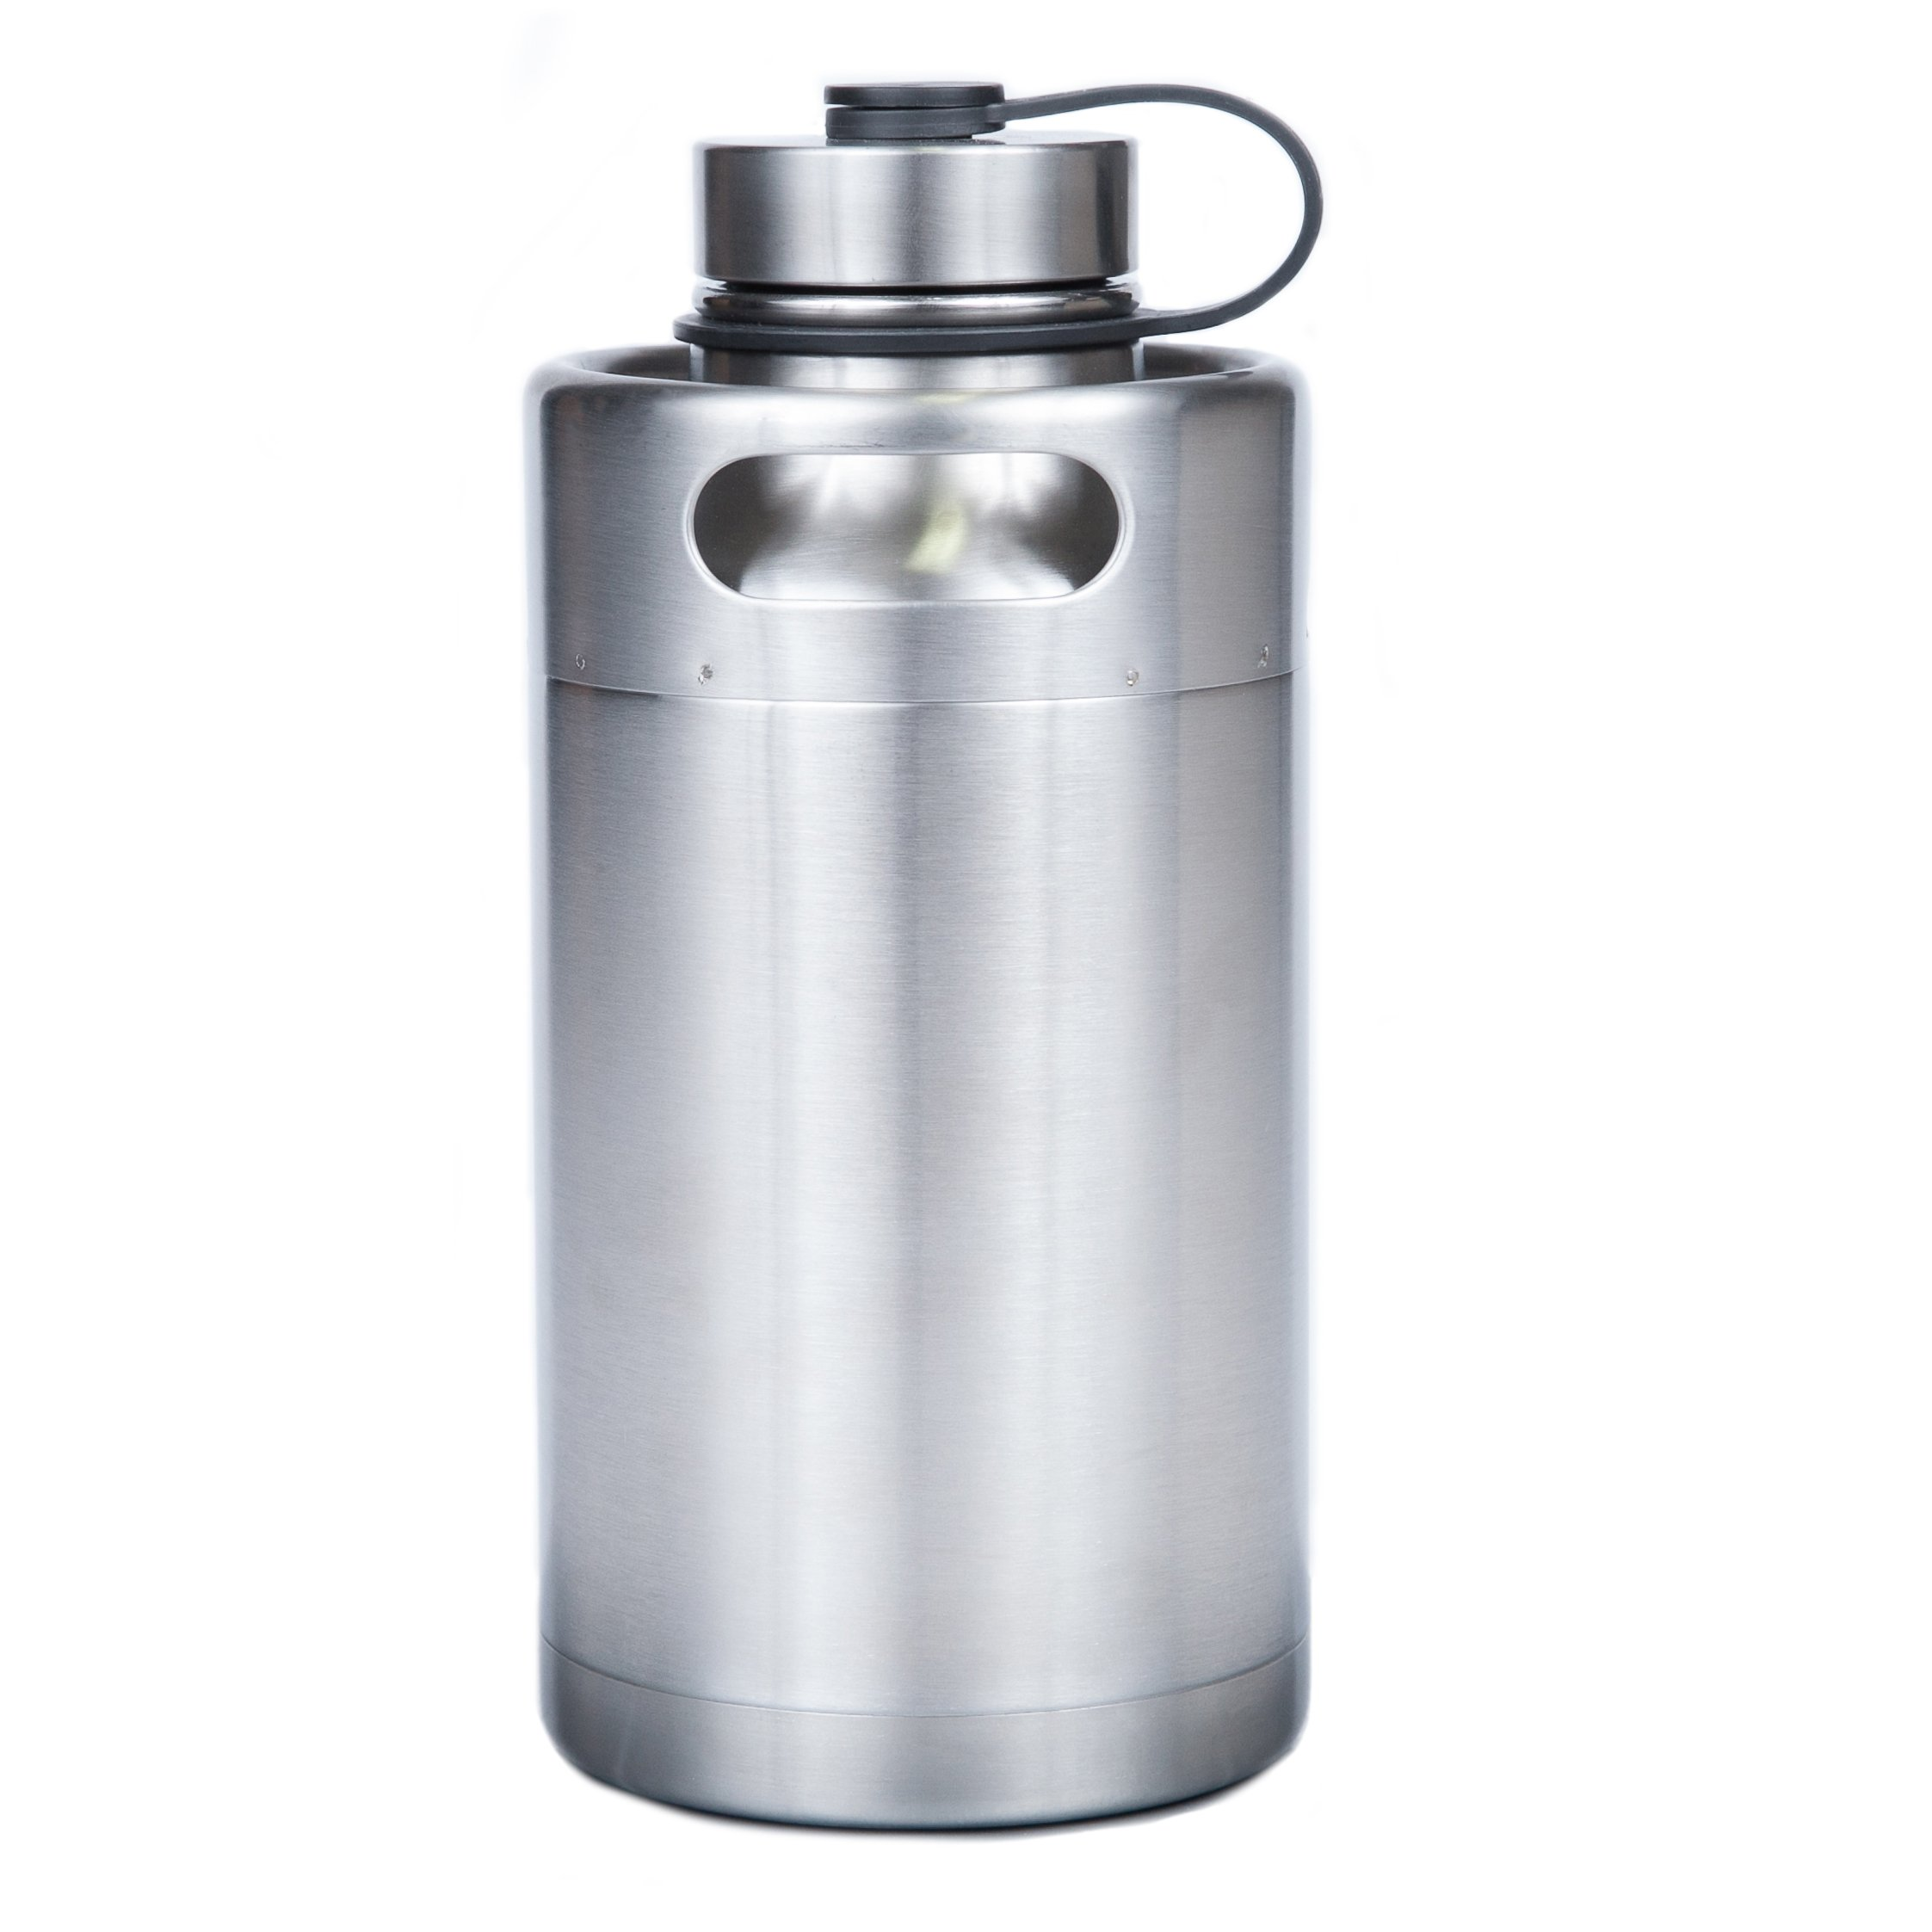 Manna Keg Growler 64 oz Double Walled Vacuum Insulated Stainless Steel w/Thermoplastic Rubber Travel Loop | BPA & Lead Free | Keeps Liquid Cold for 24 Hours & Hot for 12 hours by Manna